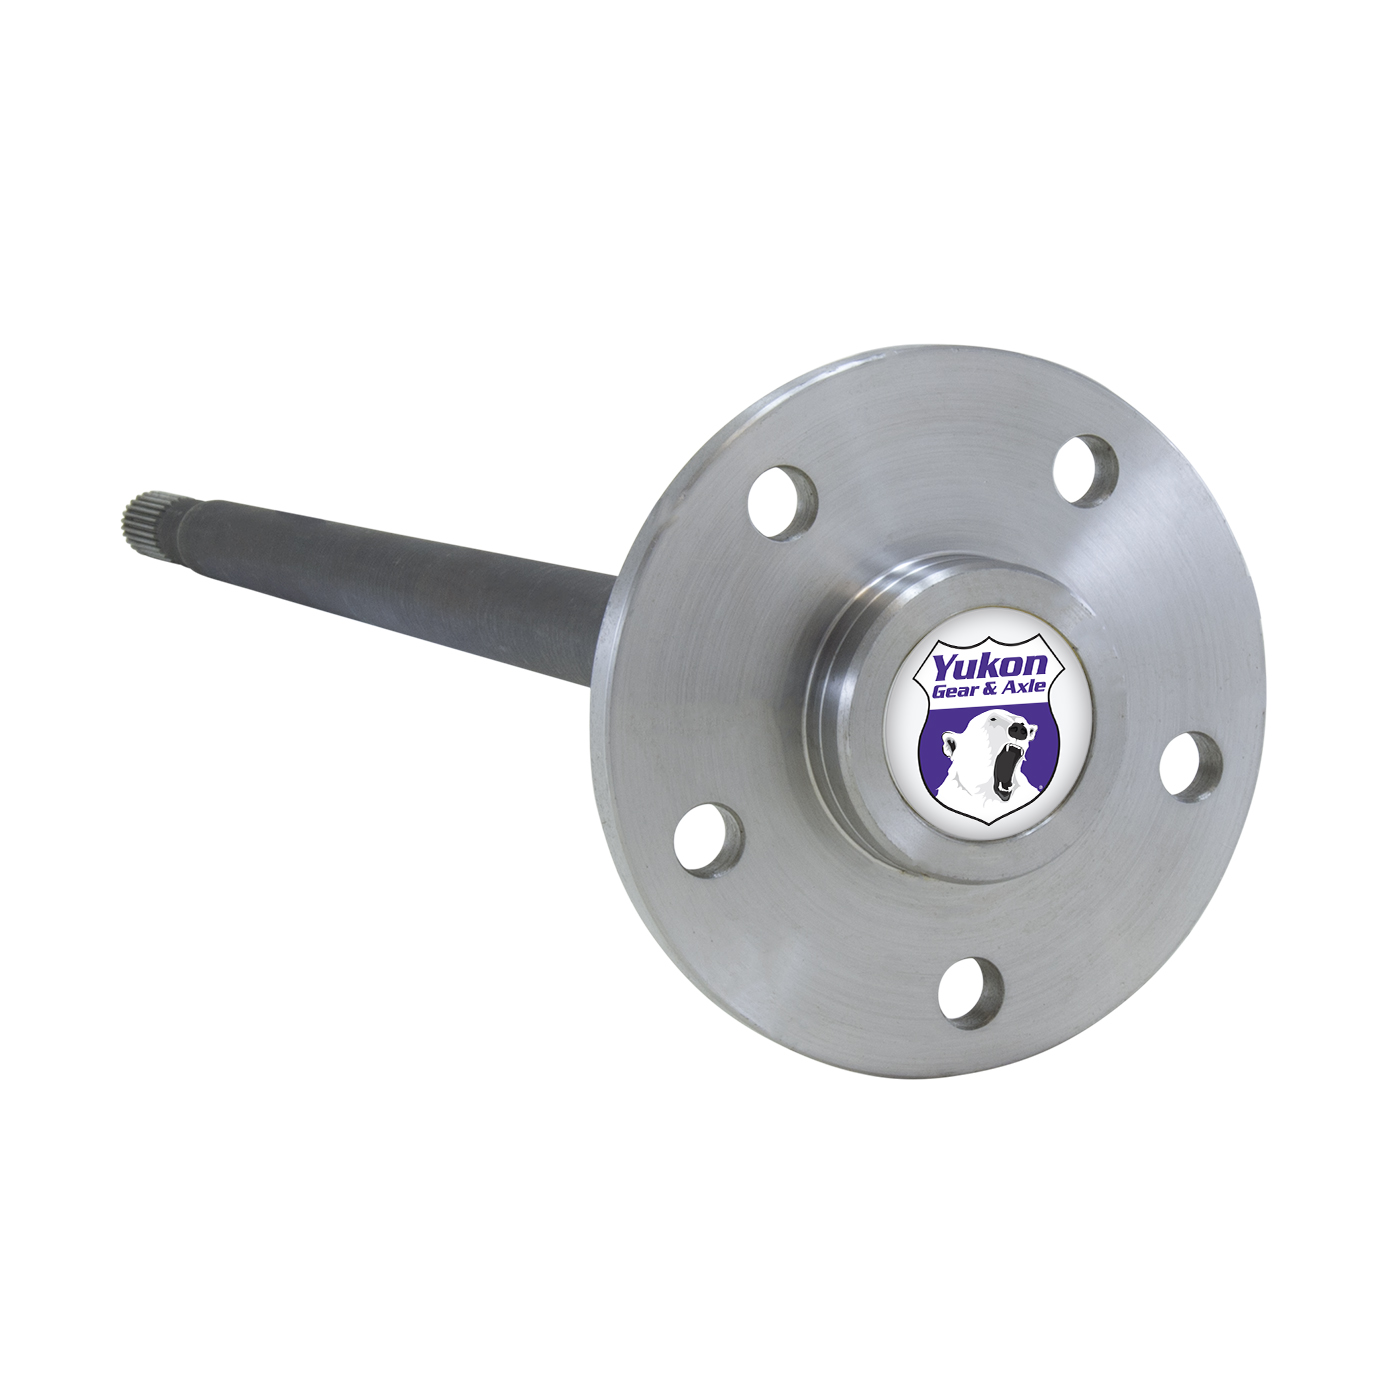 YA WM35C-27-L-HD - Yukon 4340 Chrome Moly alloy left hand rear axle for Model 35 heavy duty (drum brakes)